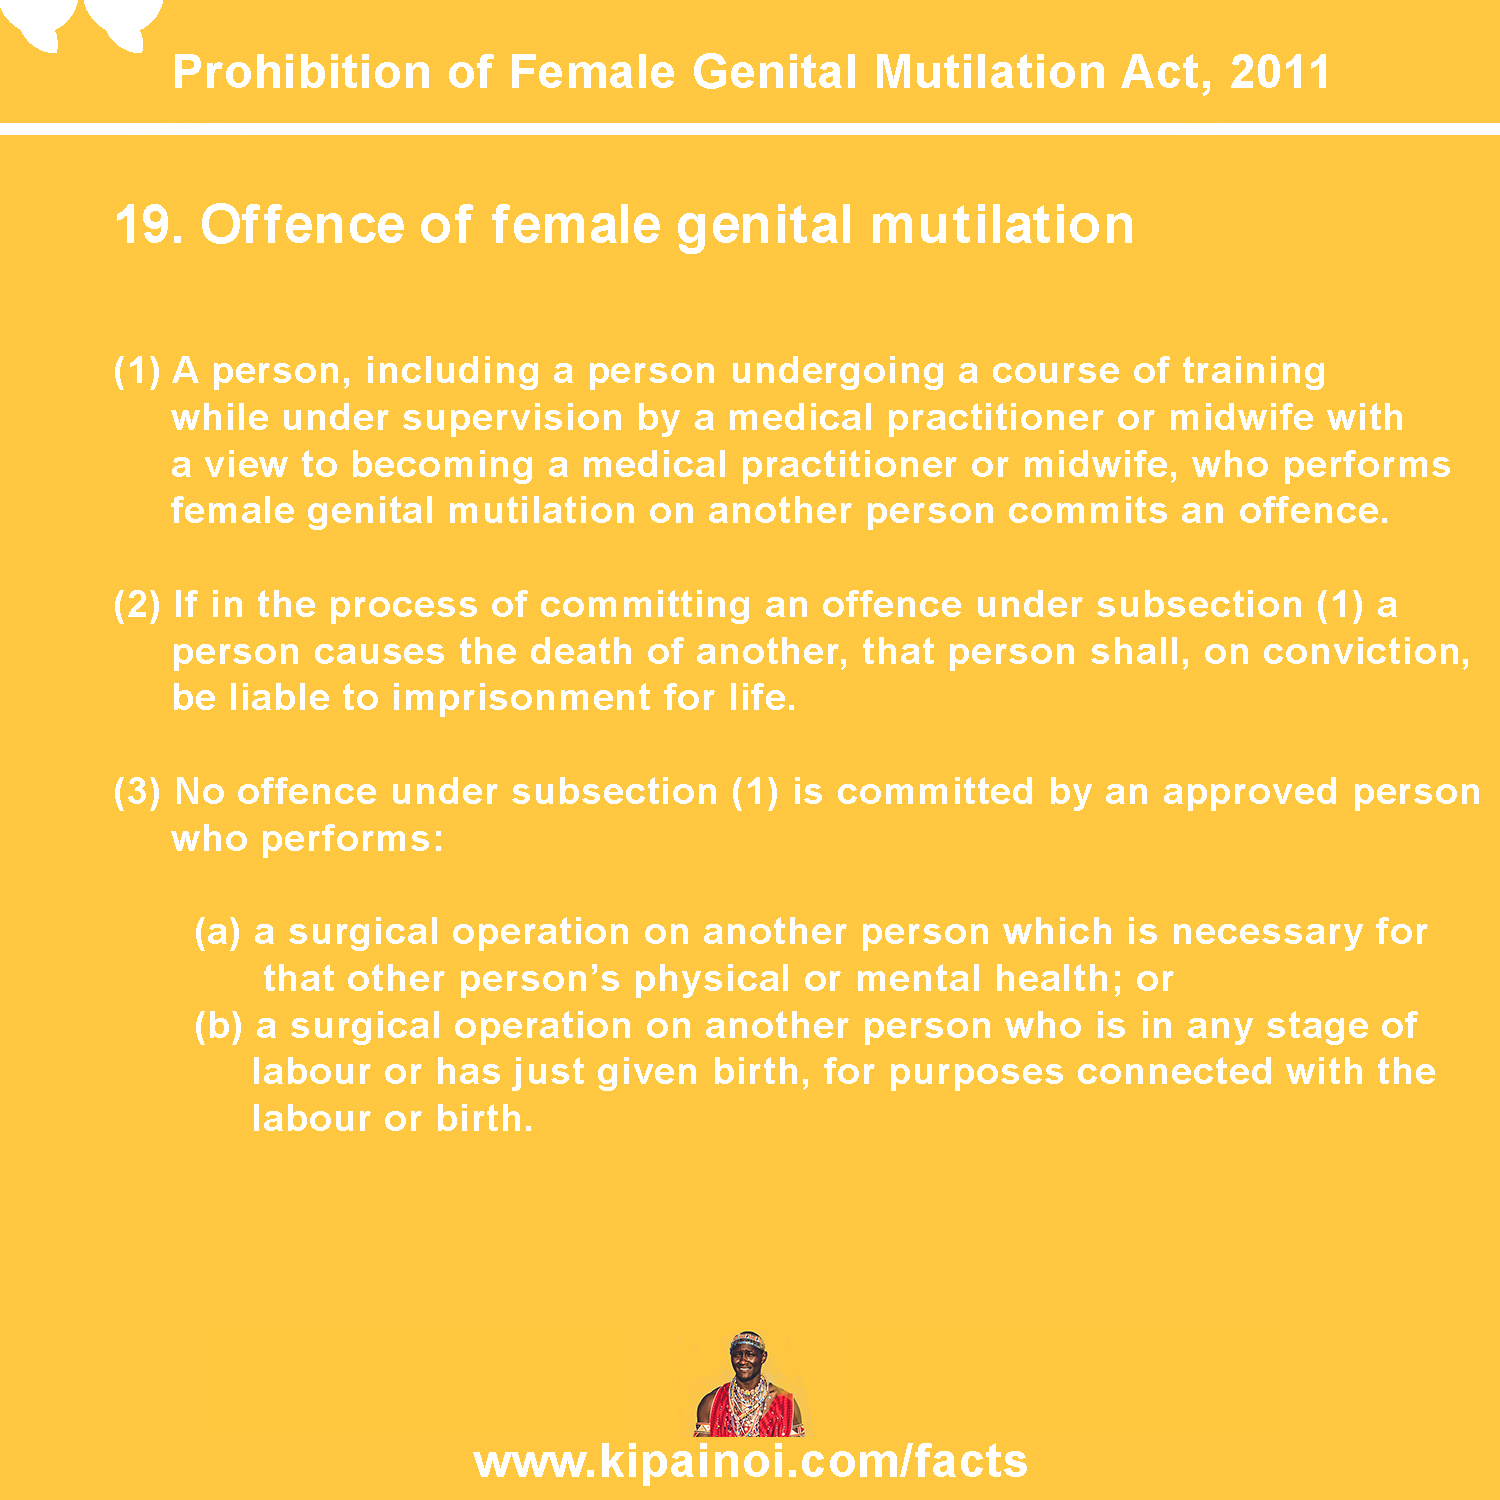 19. Offence of female genital mutilation